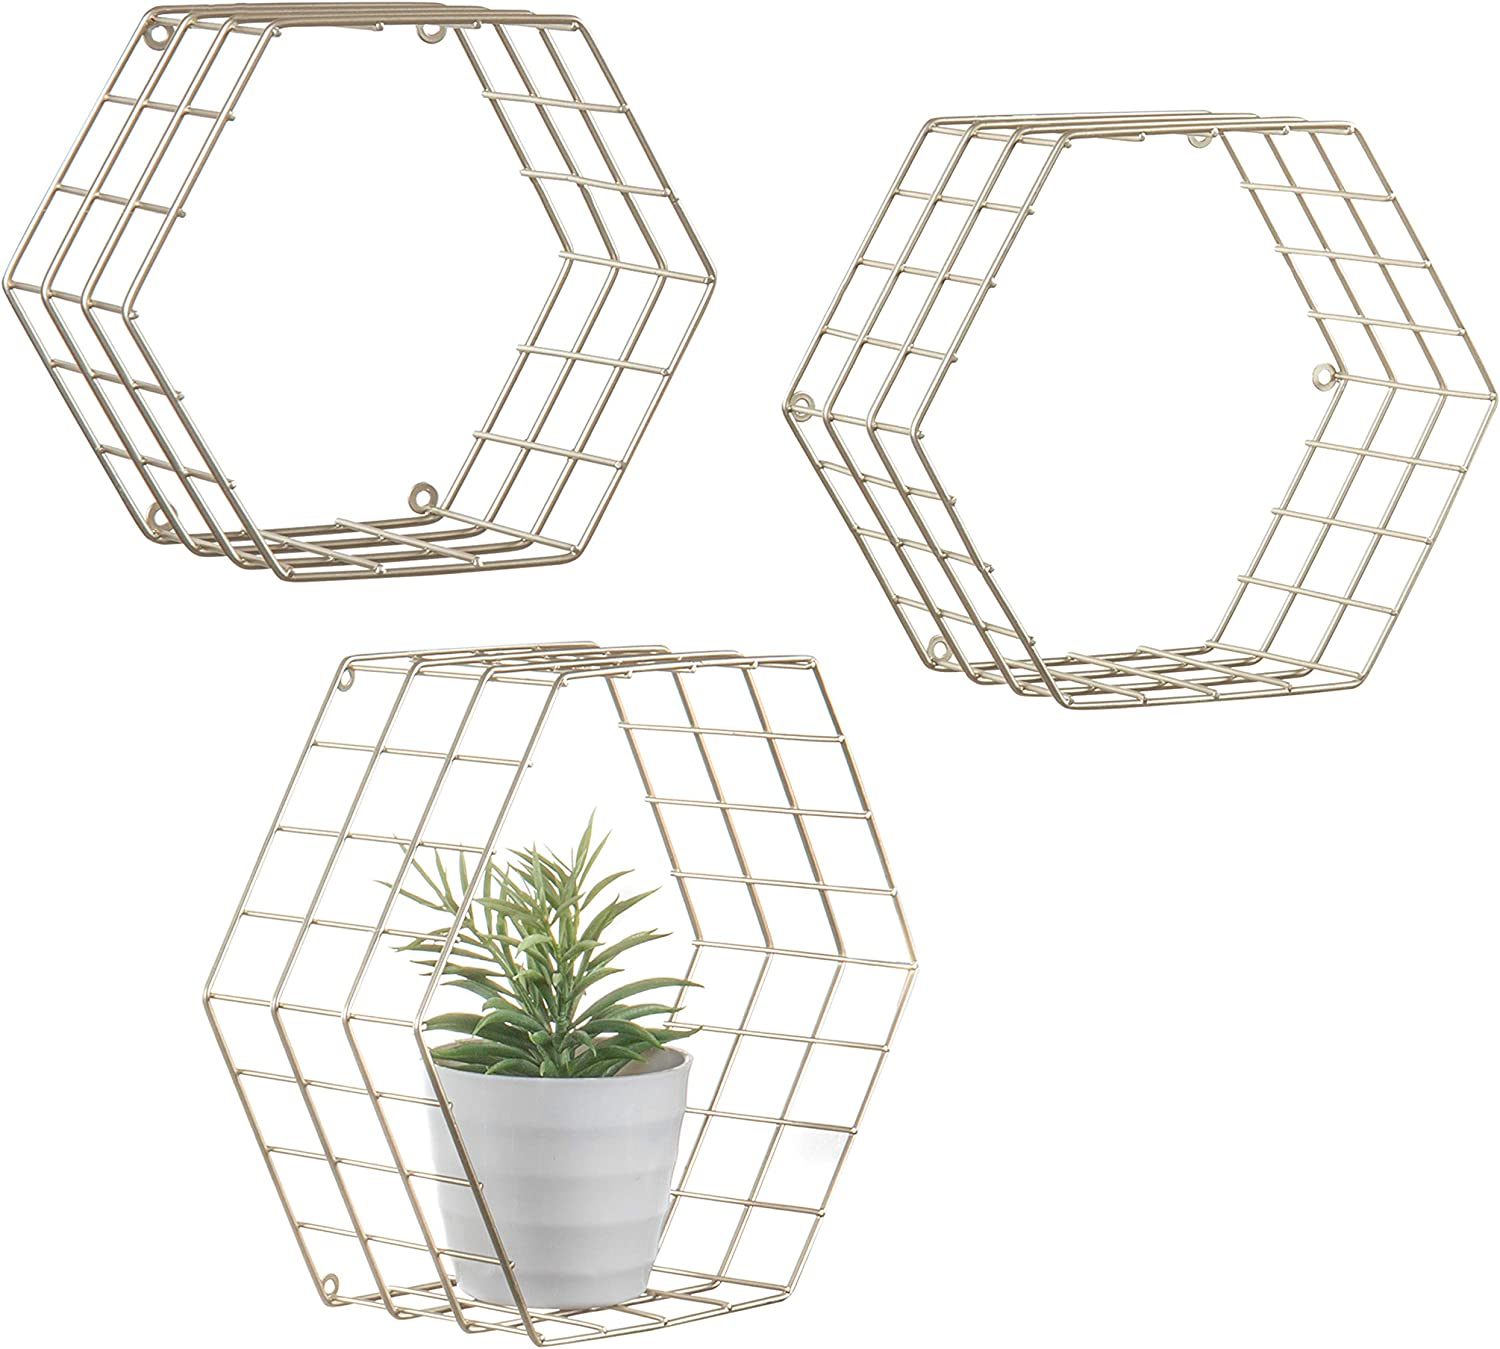 MyGift Hexagonal Brass-Tone Wire Wall-Mounted Hanging Shelves, Set of 3